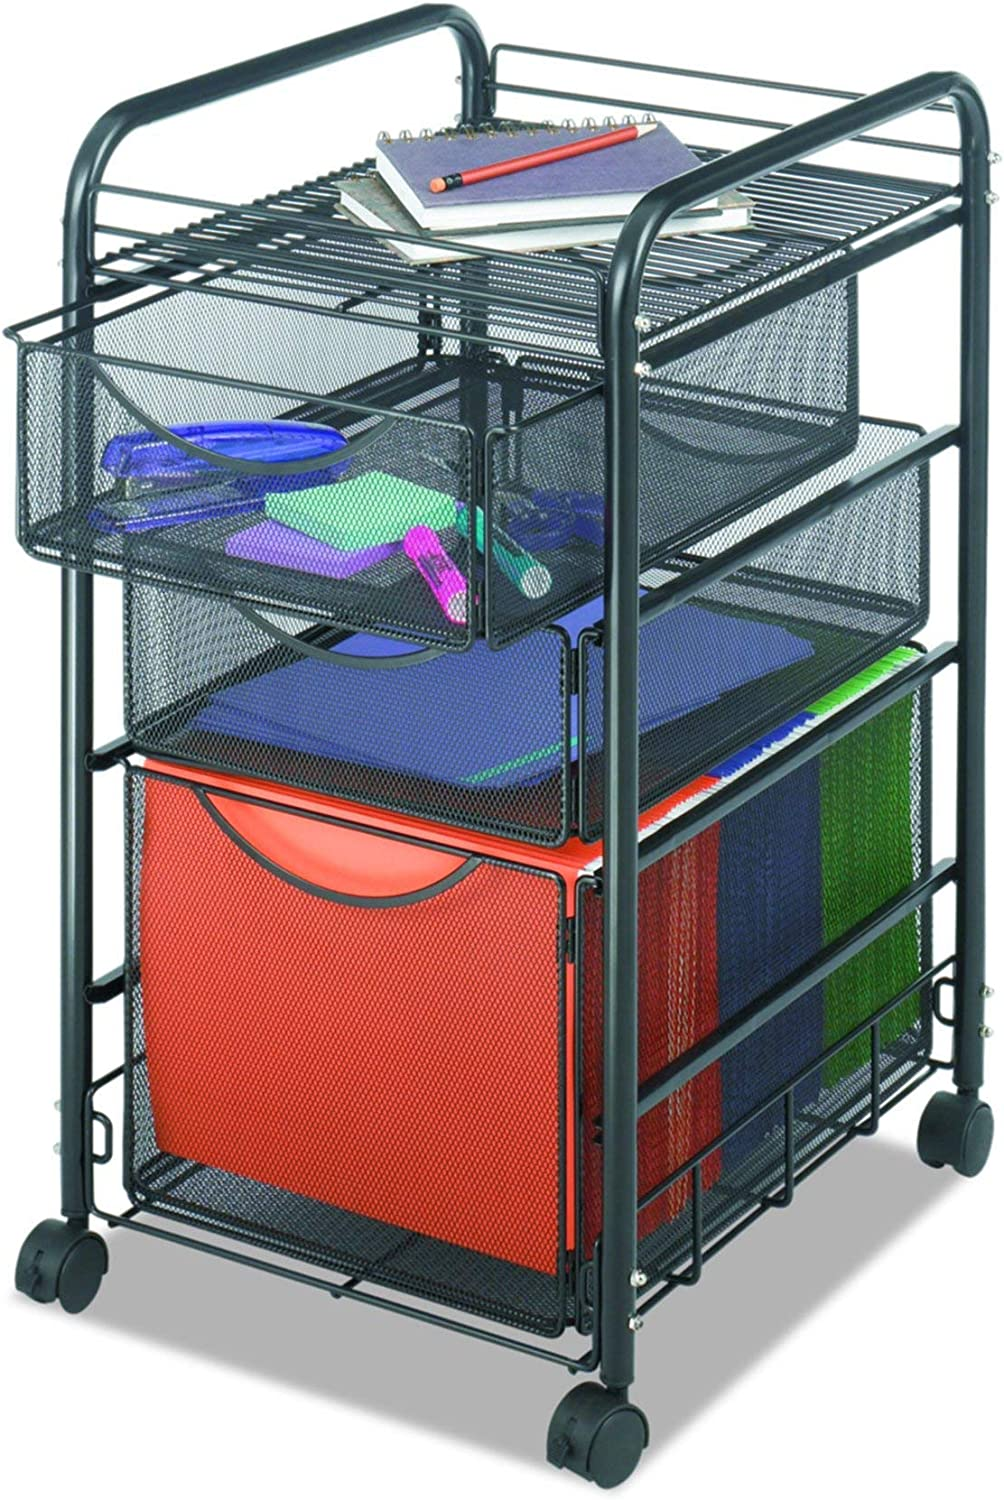 Safco Products Onyx Mesh 1 File Drawer and 2 Small Drawers Rolling File Cart 5213BL, Black Powder Coat Finish, Durable Steel Mesh Construction, Swivel Wheels For Mobility : Vertical File Cabinets : Office Products